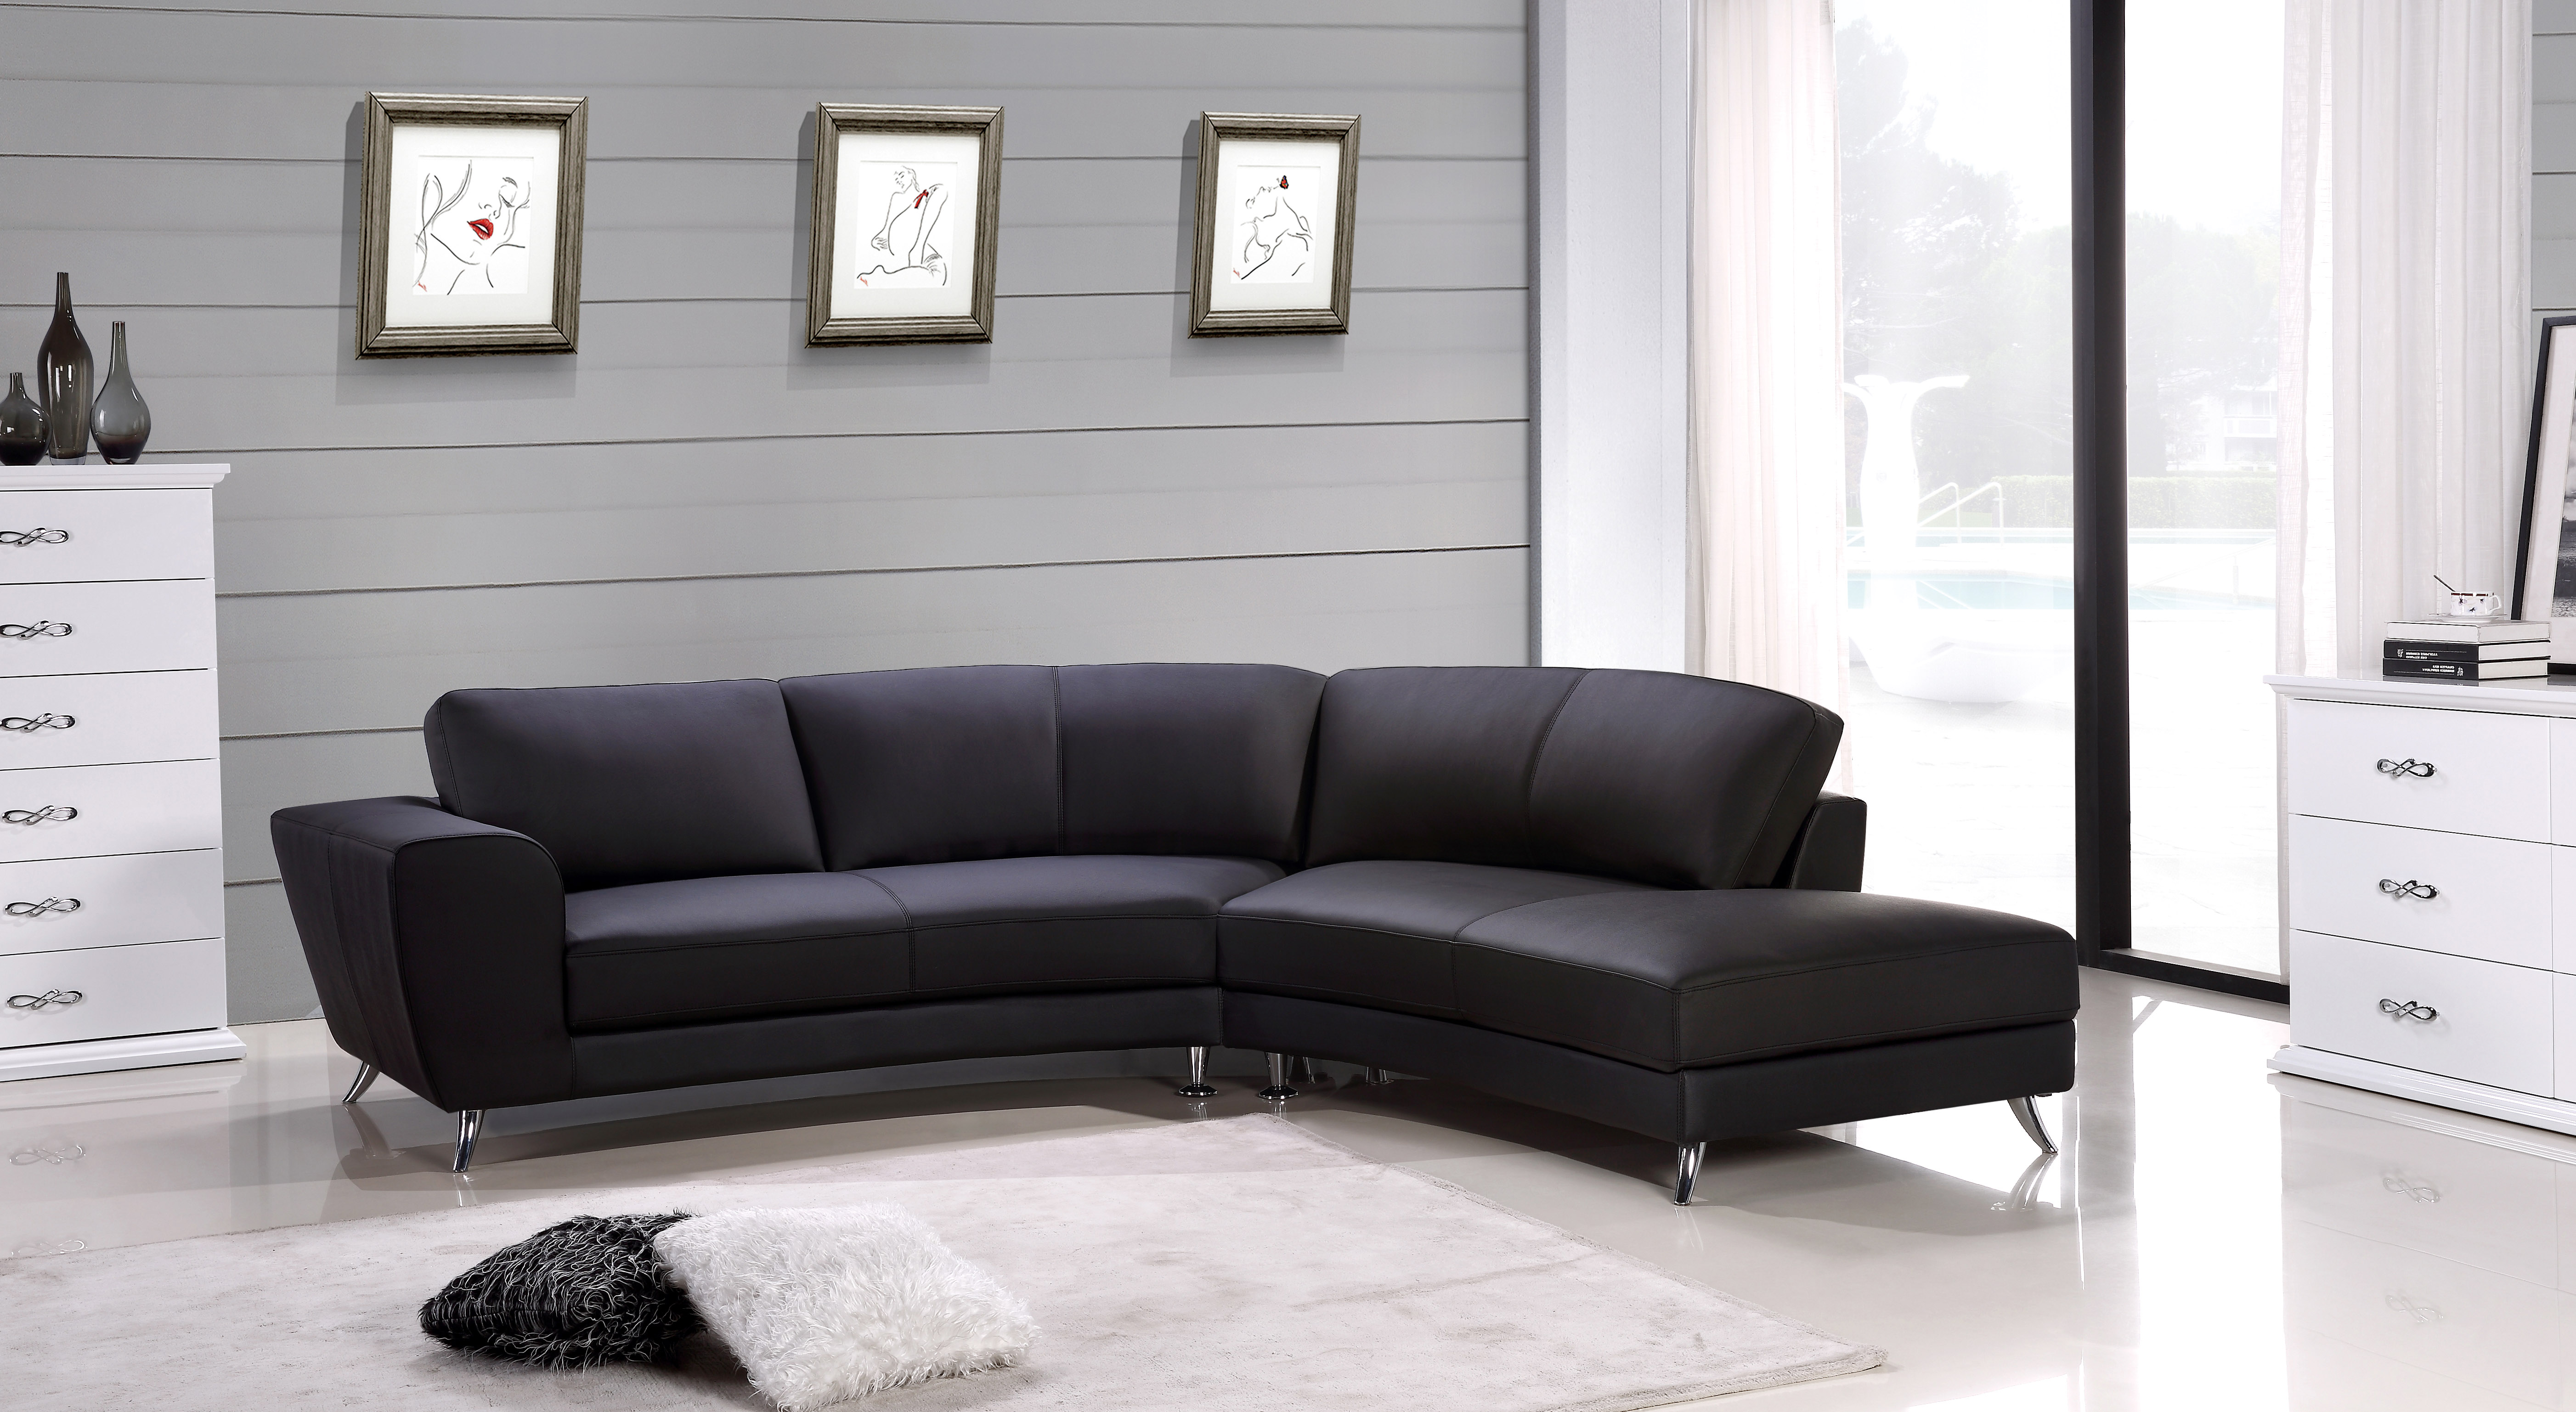 Unique Quality Leather L shape Sectional Los Angeles California